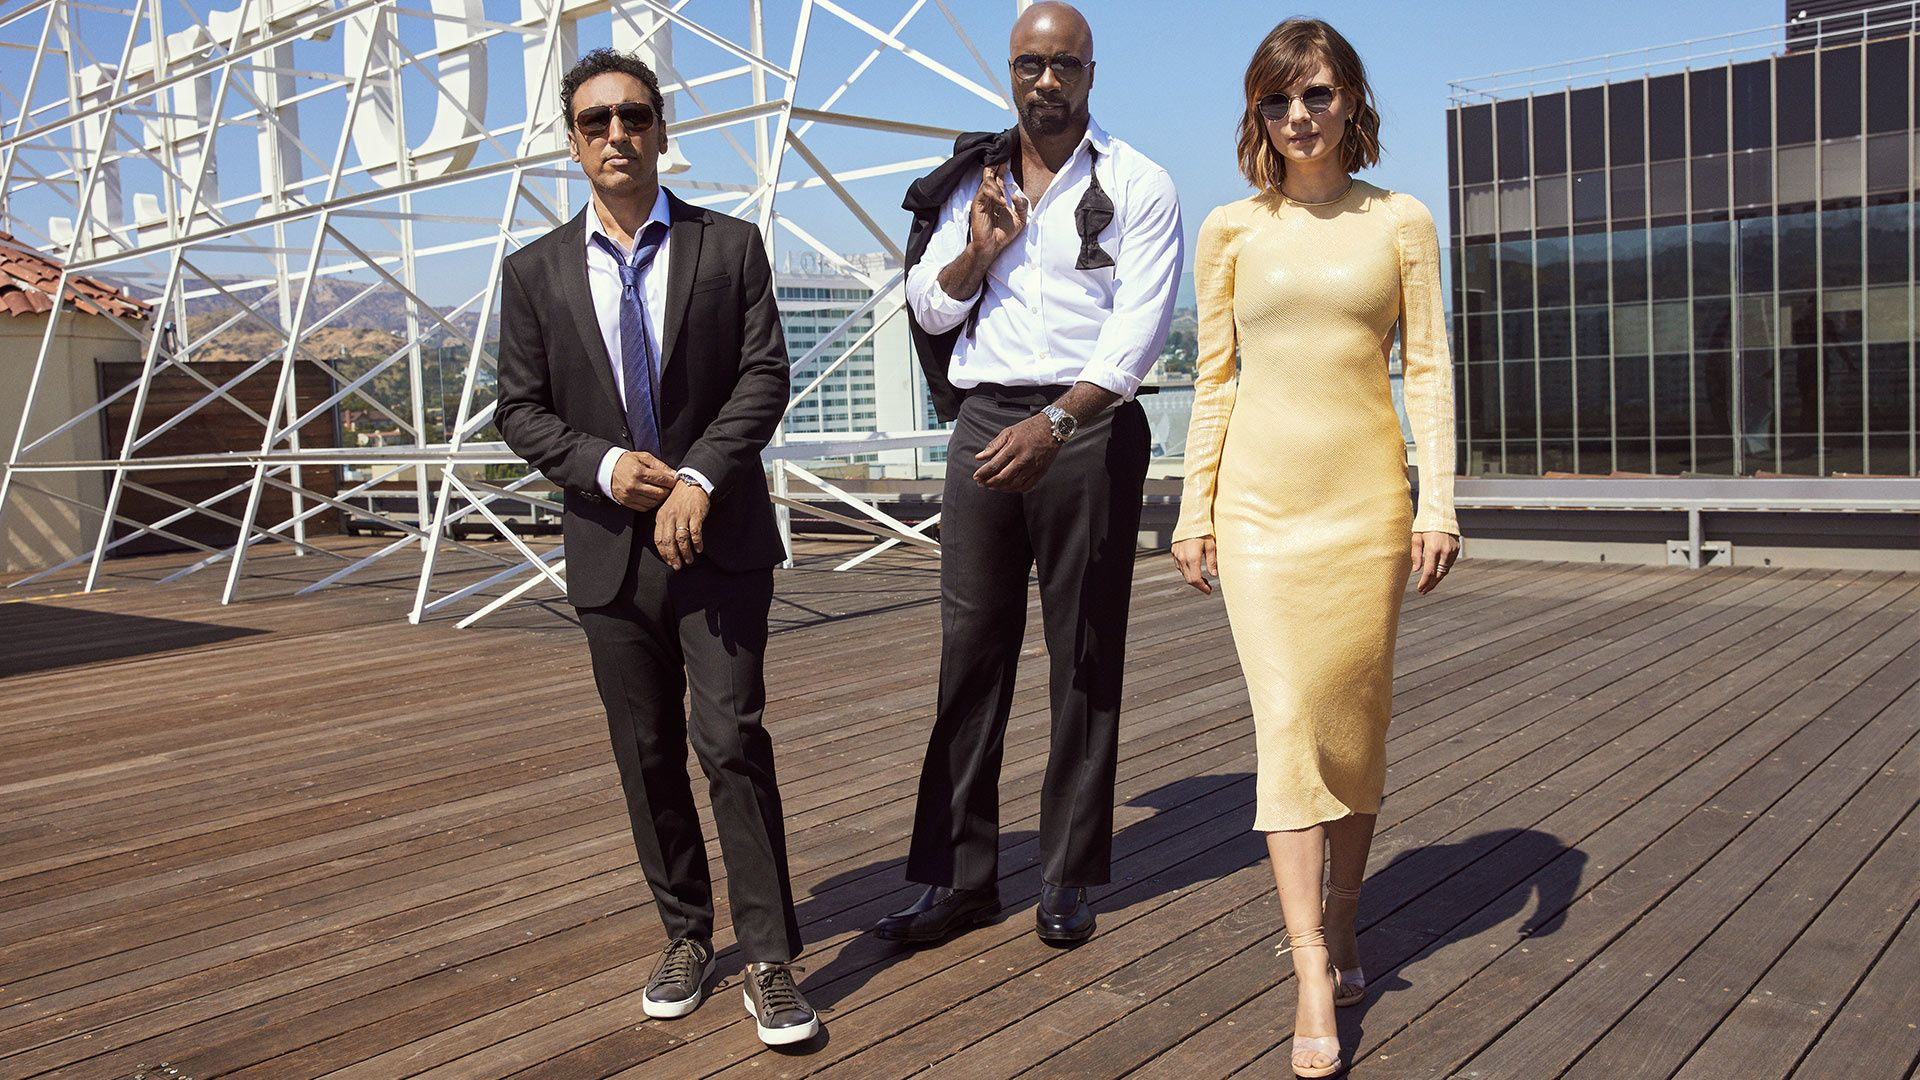 The cast of TV show Evil on a rooftop in Hollywood.